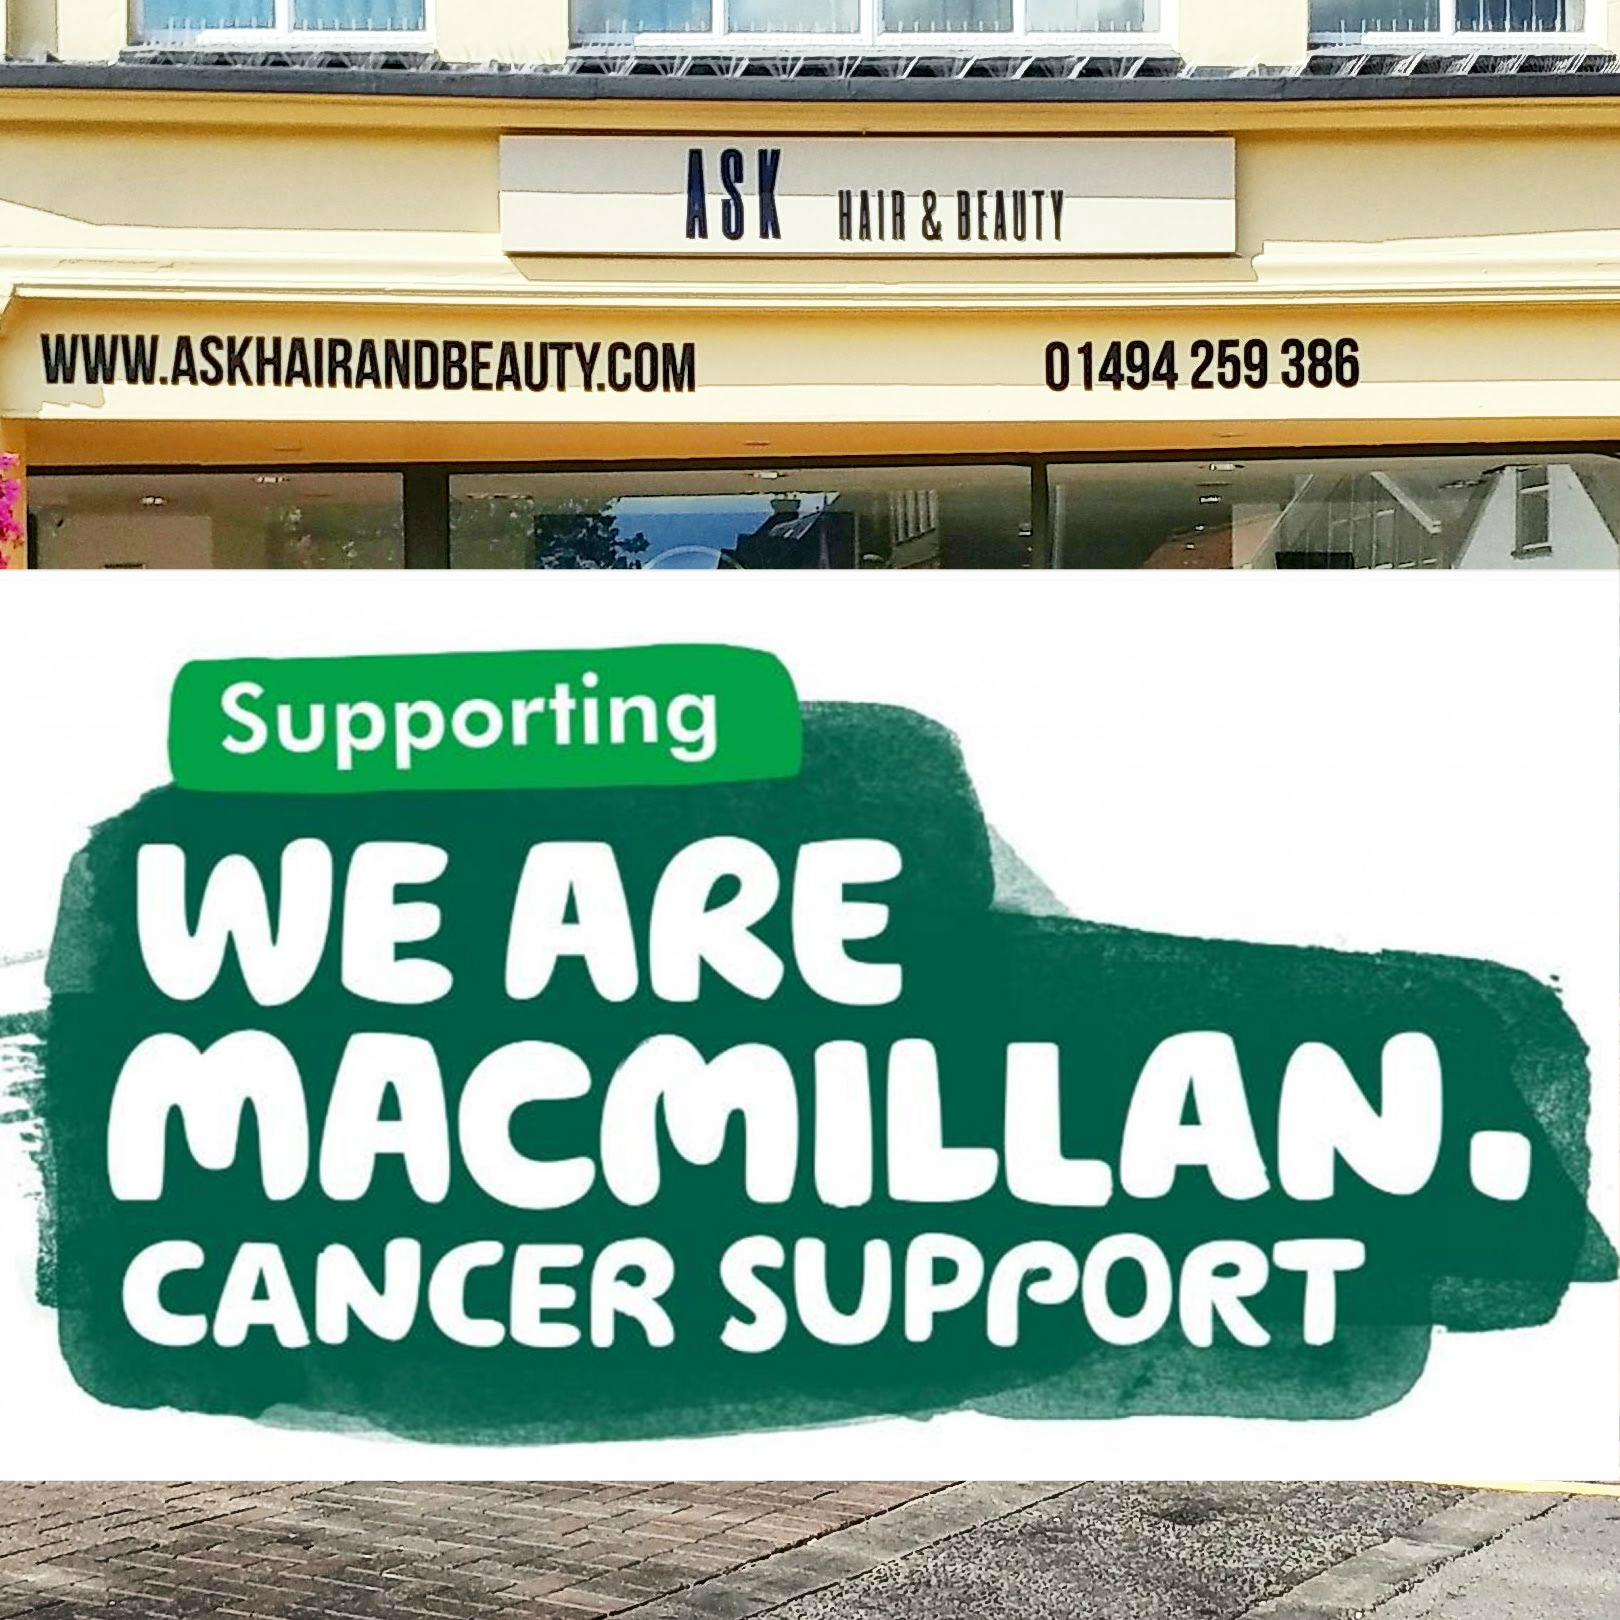 Macmillan Cancer Support Coffee Morning Hosted by A S K Hair & Beauty